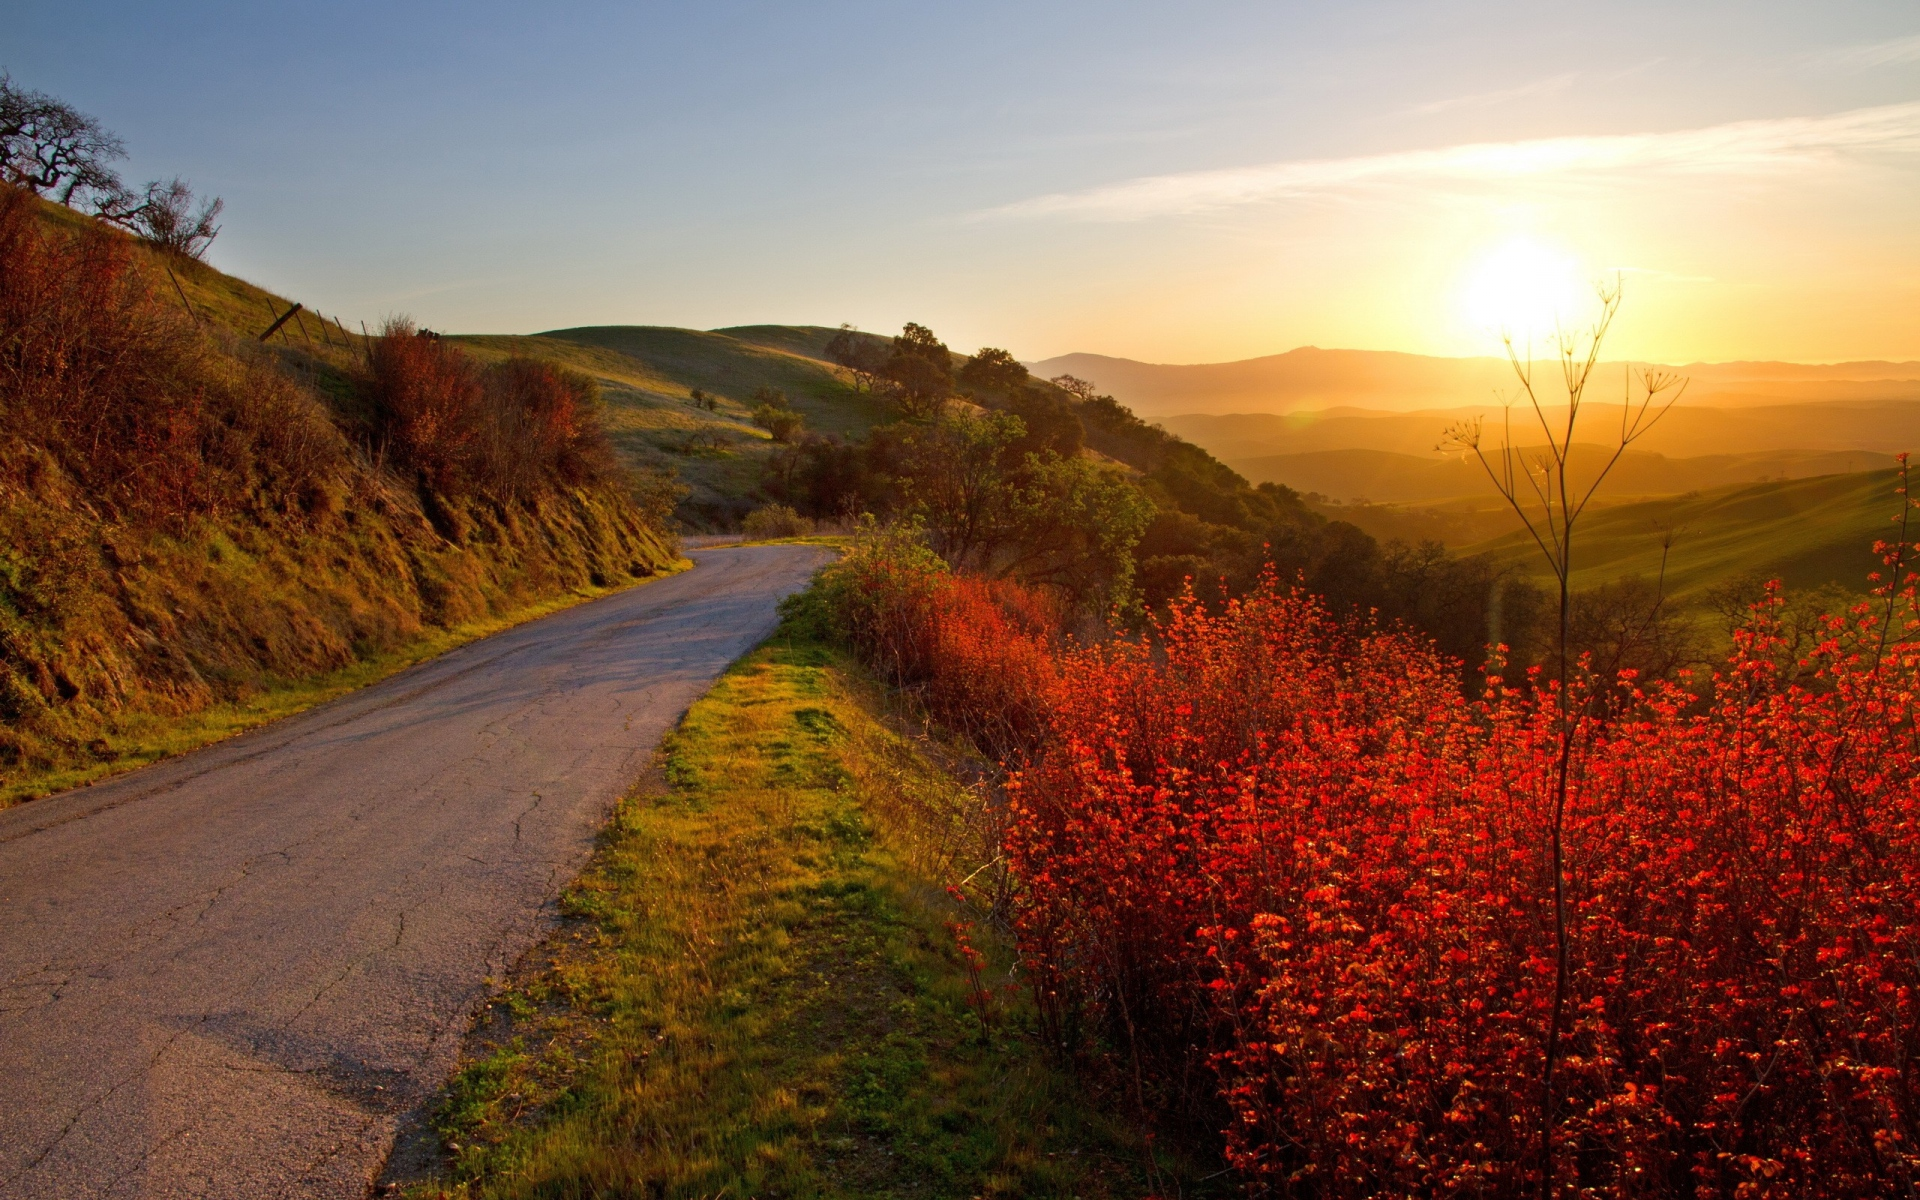 Forest Animated Wallpaper Hills Road Plants Amp Sunlight Wallpapers Hills Road